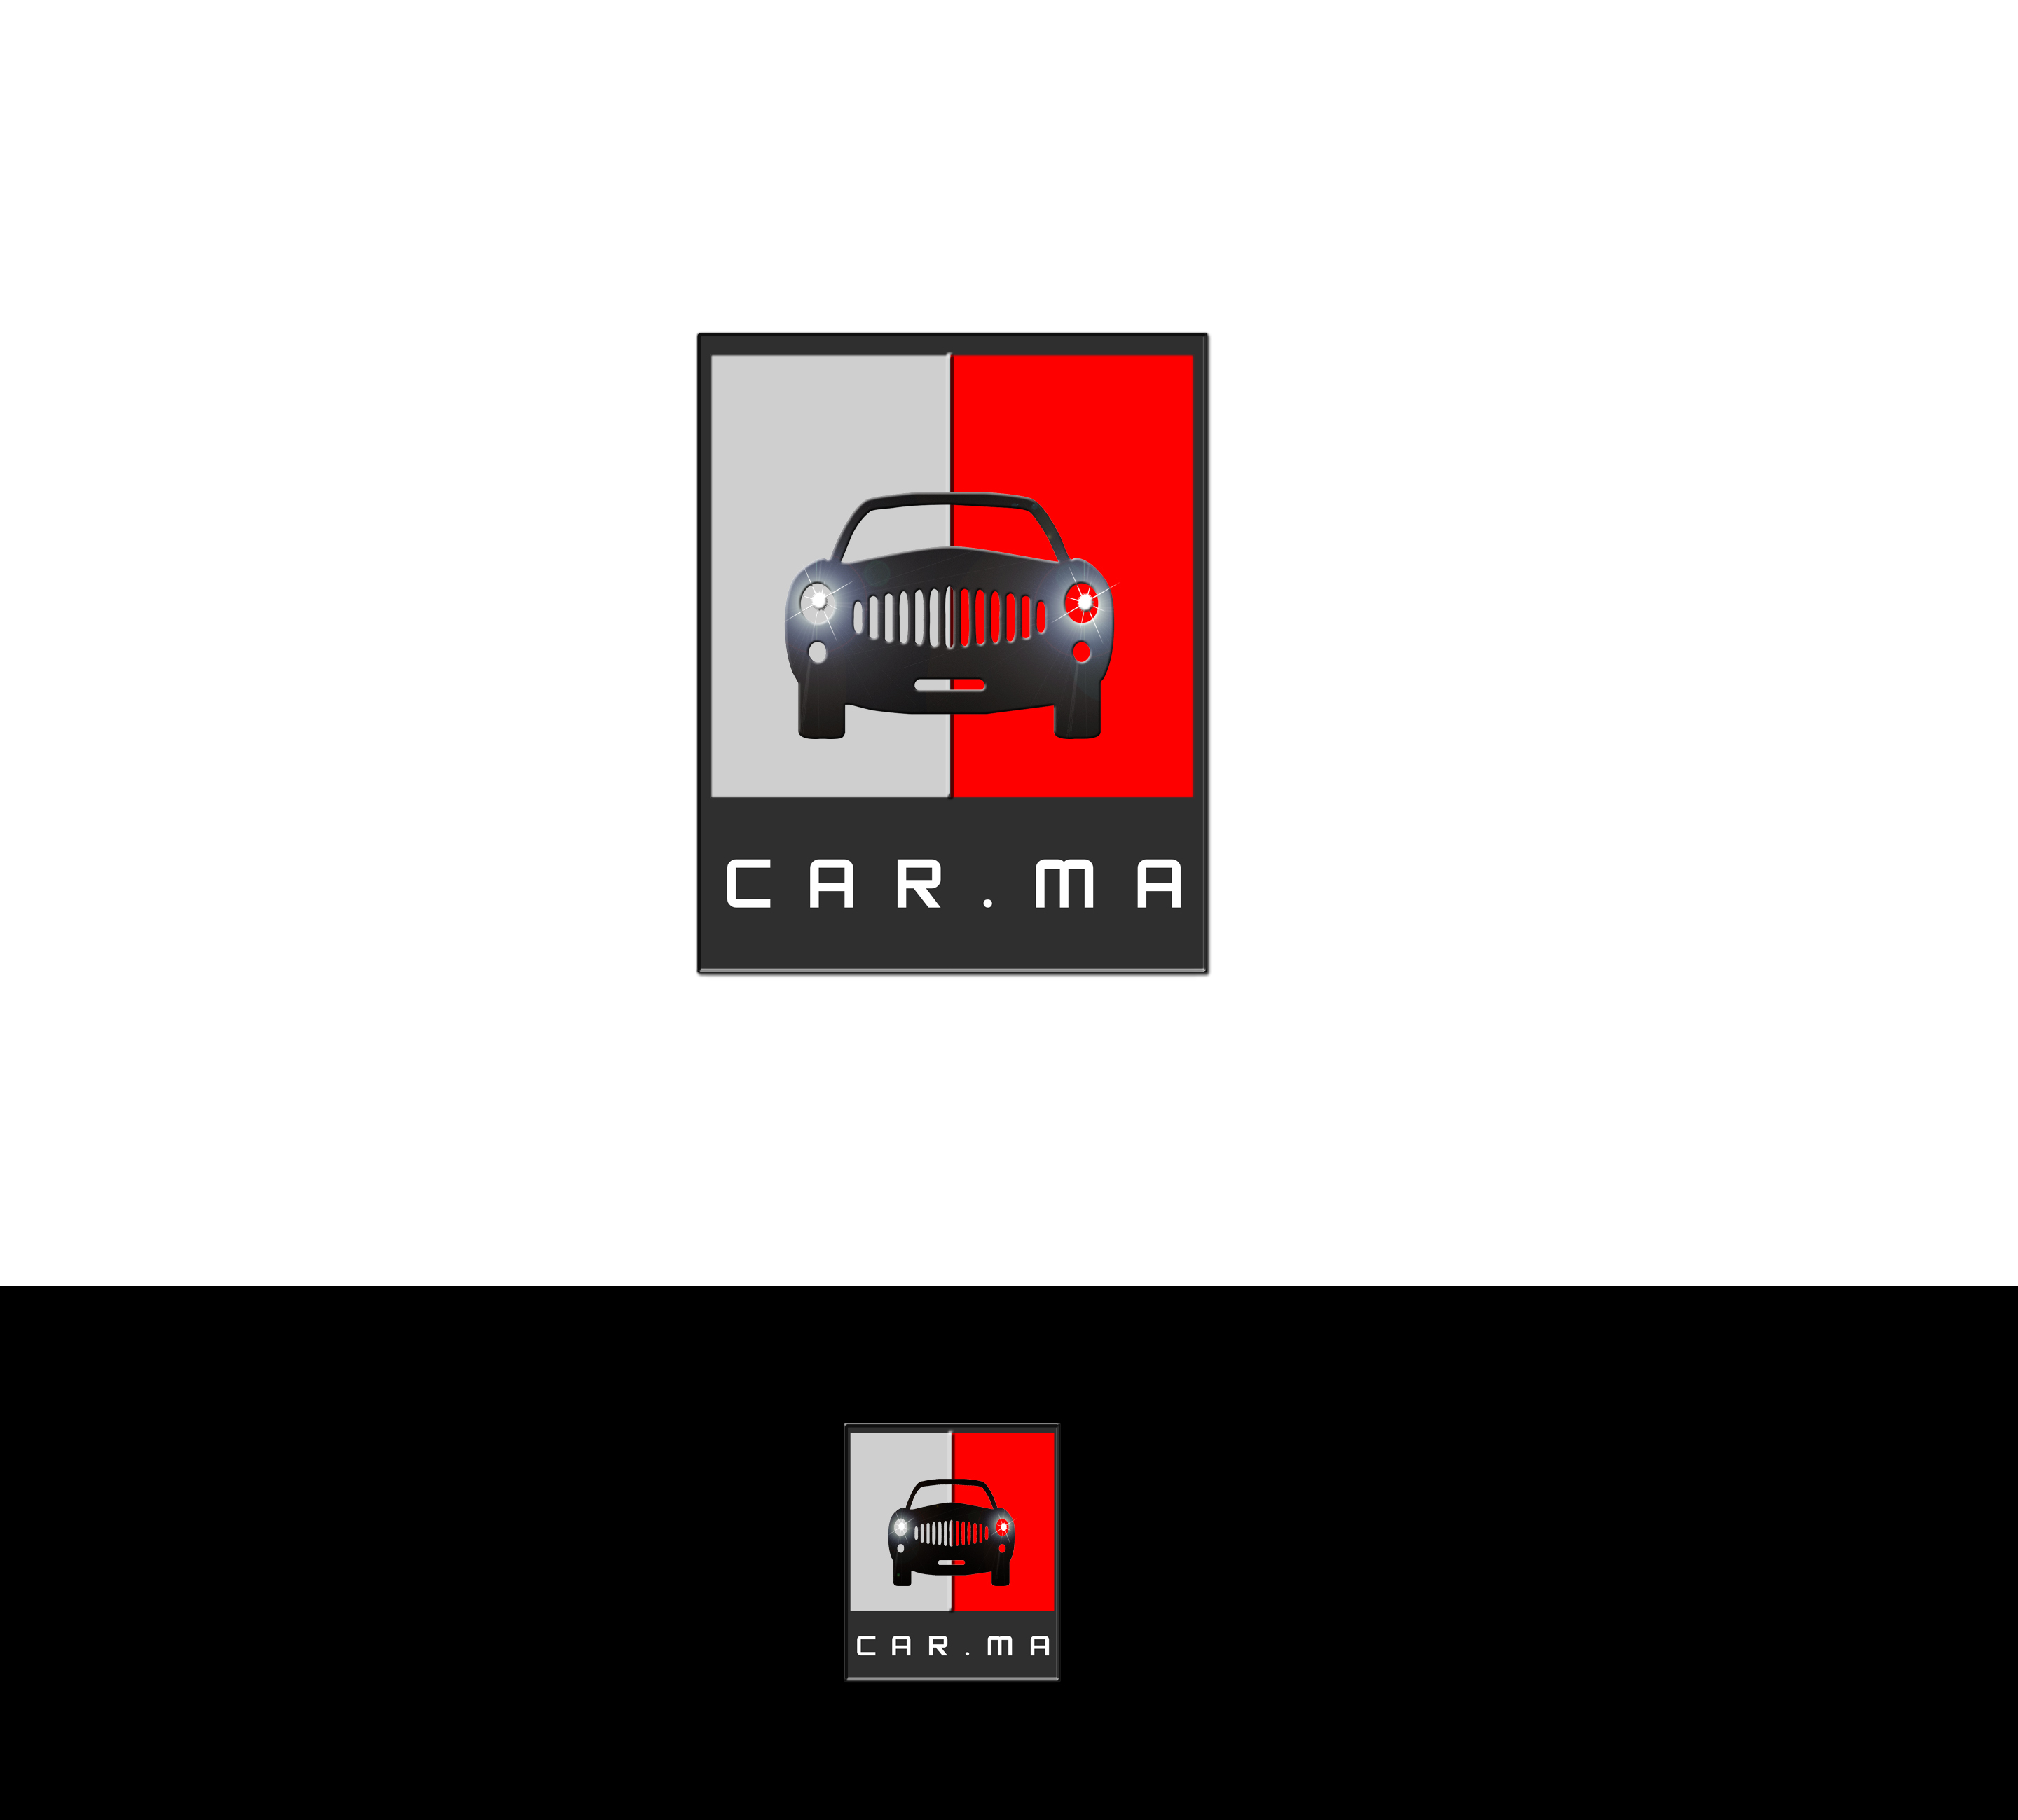 Logo Design by Lara Puno - Entry No. 43 in the Logo Design Contest New Logo Design for car.ma.